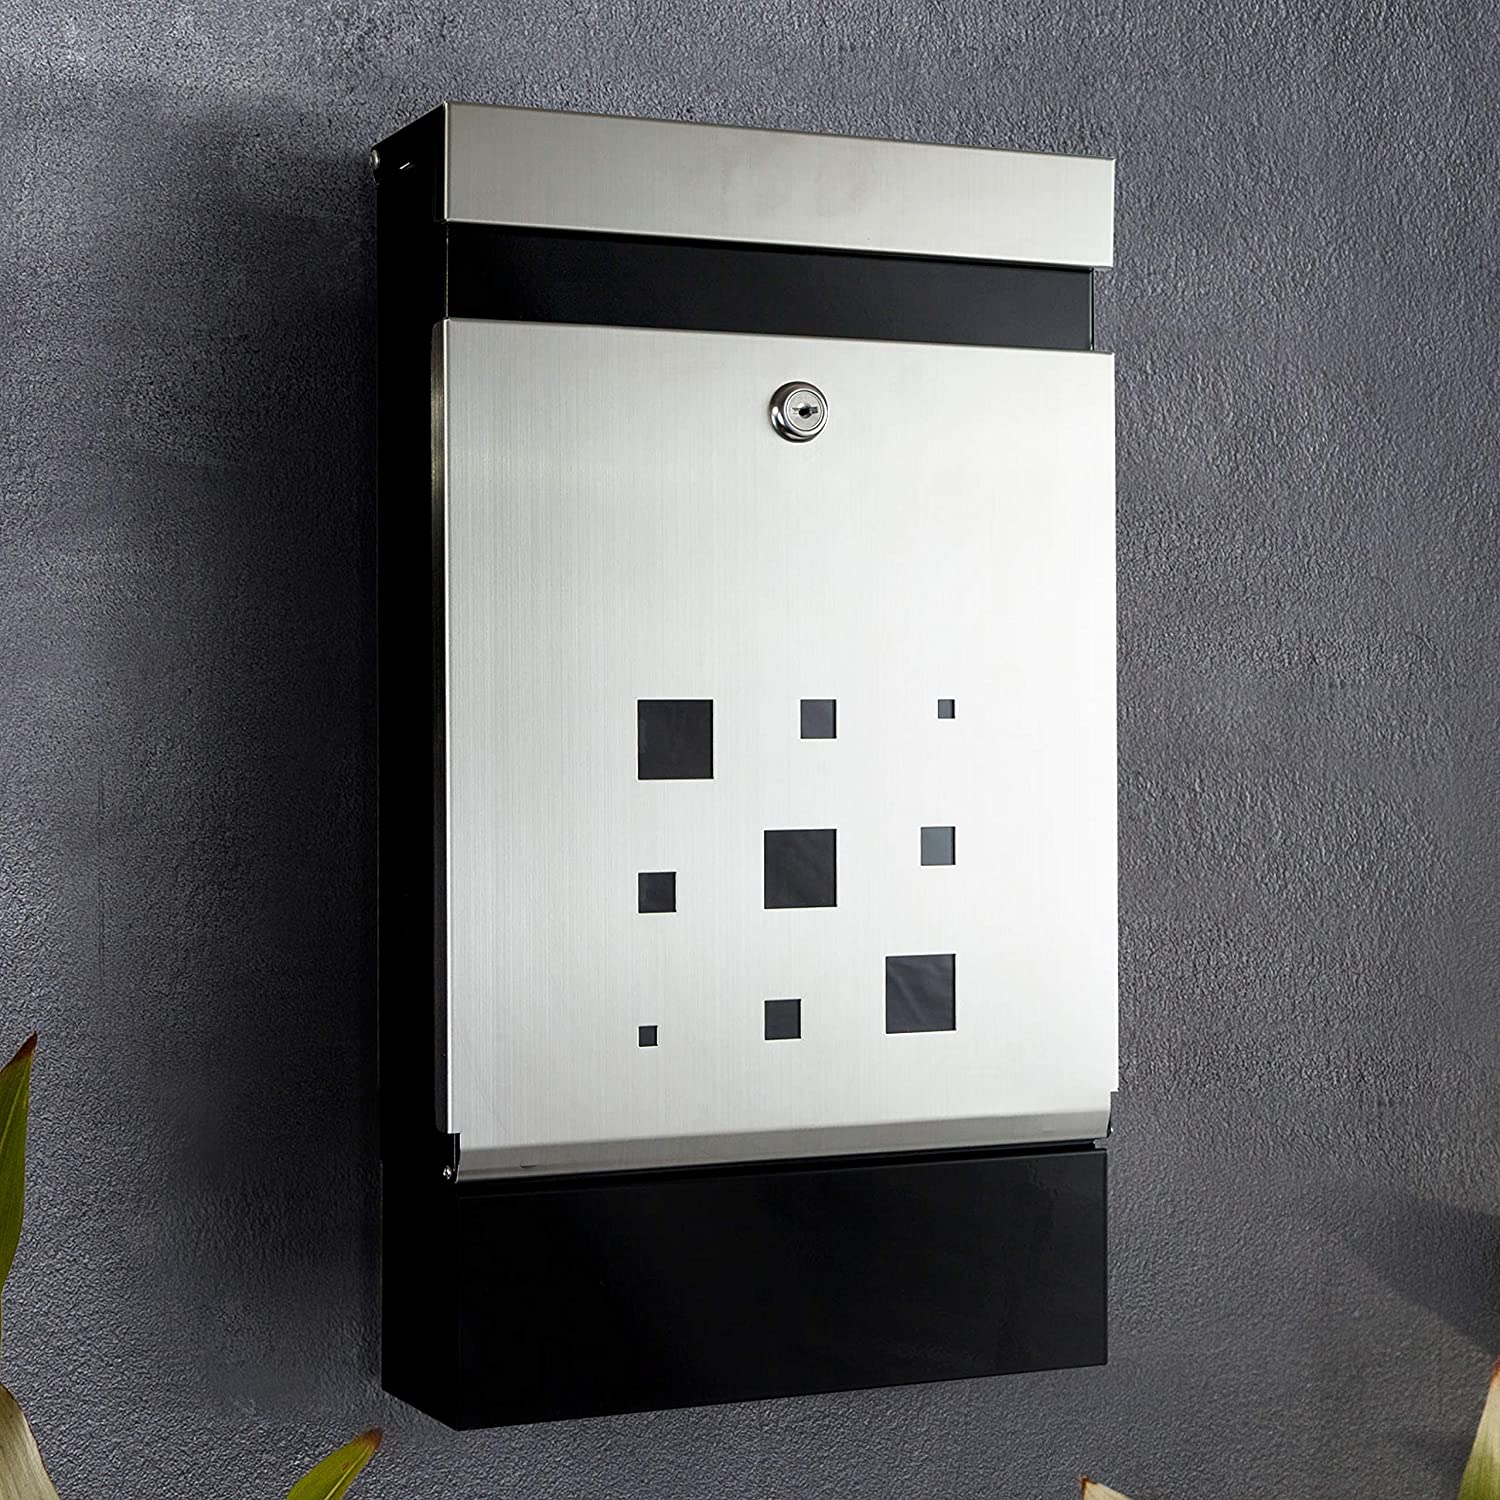 Mailbox Premium Weather-Resistant Wall-Mounted CA186 Architectural Design